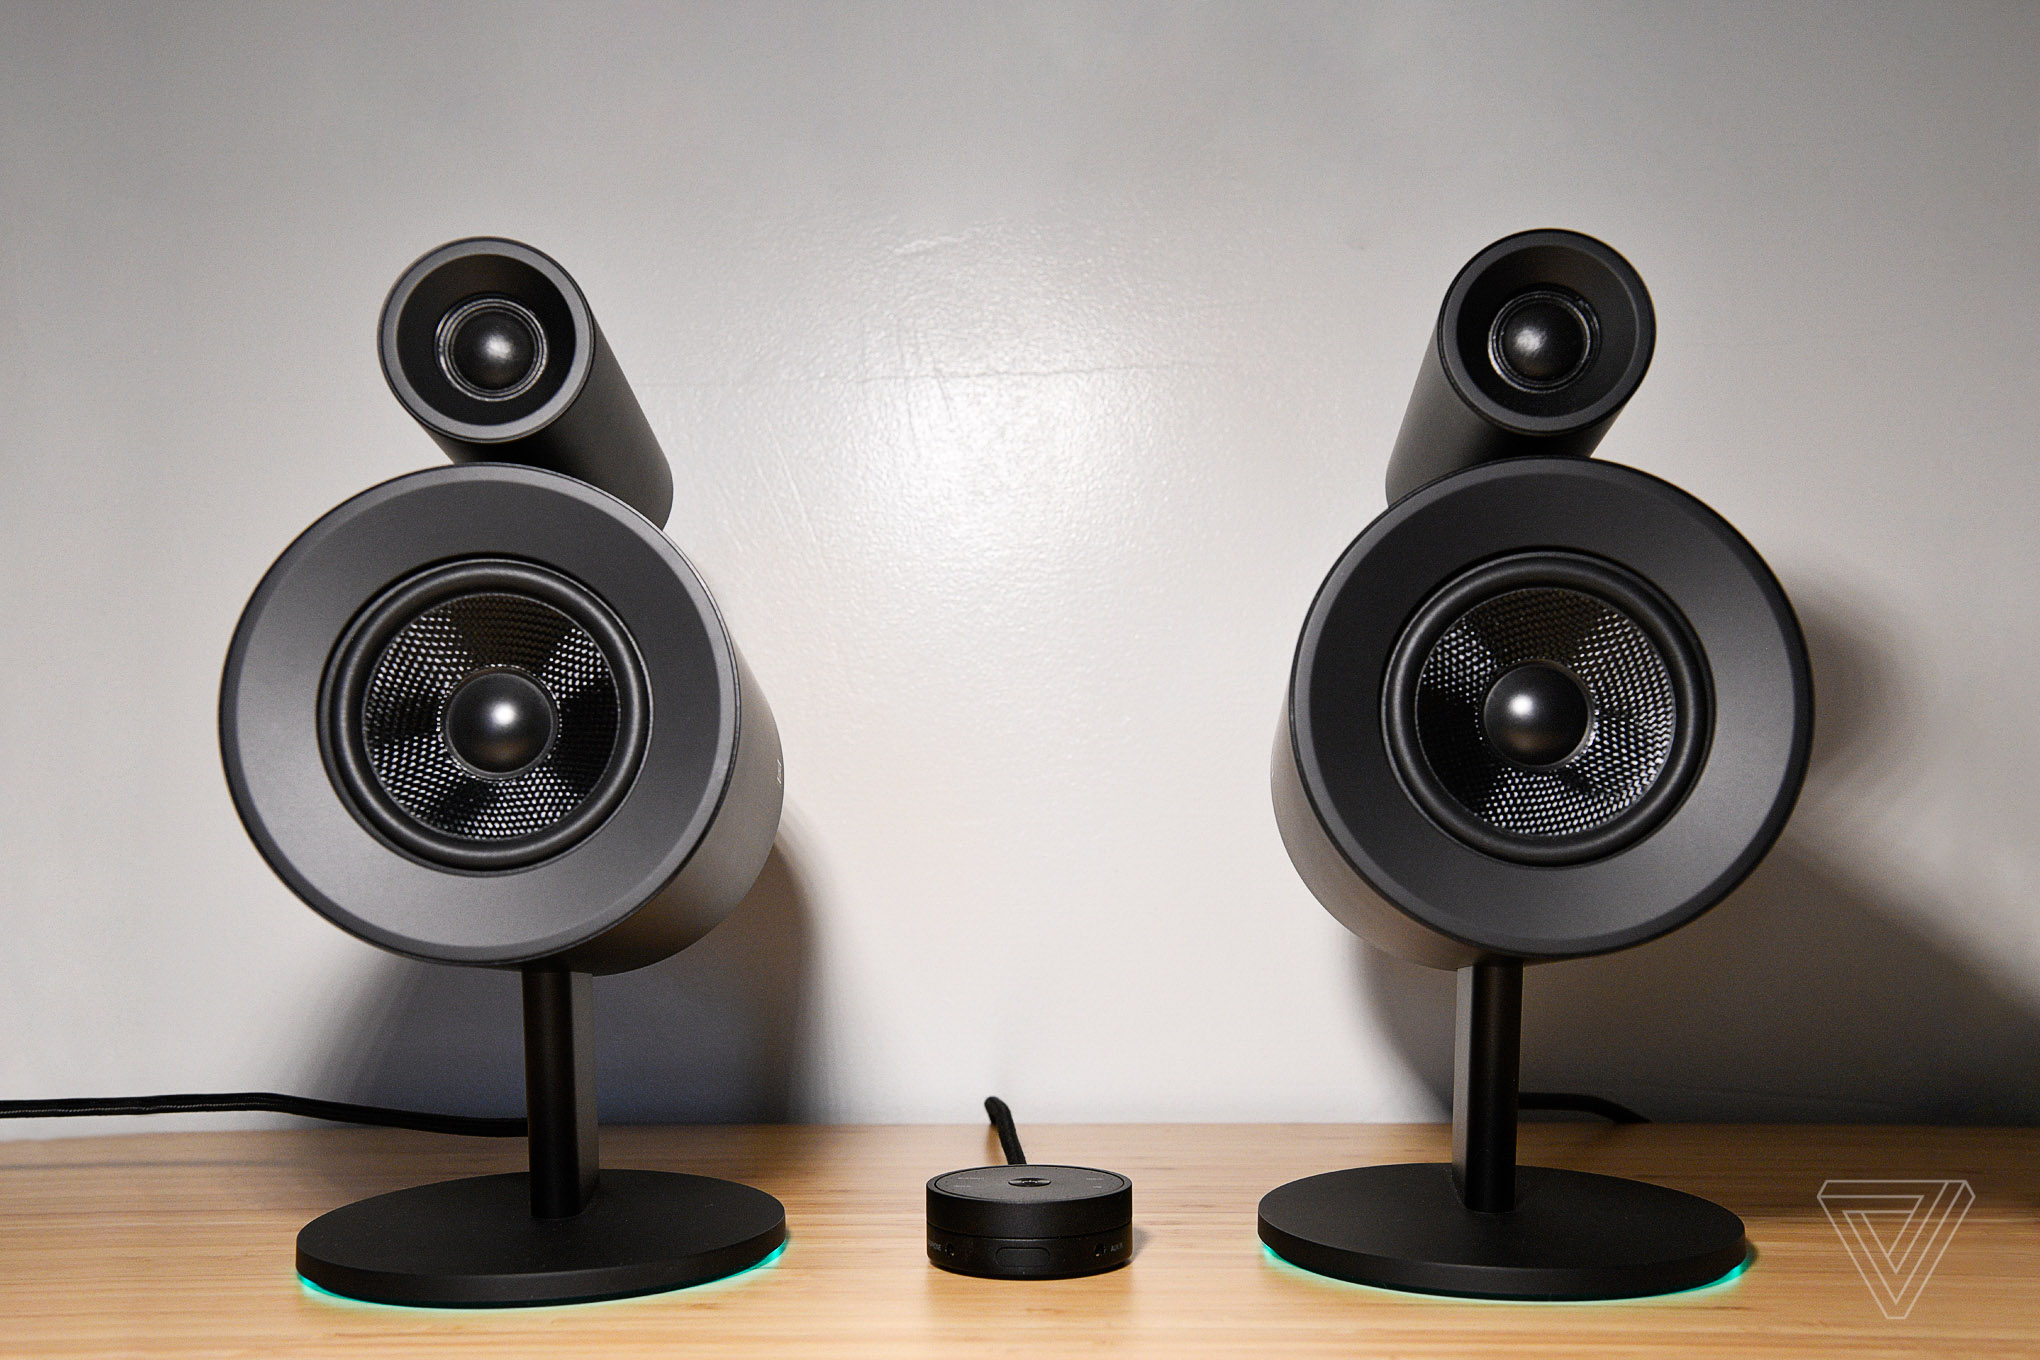 Razer Nommo Pro speakers review: versatility comes at a